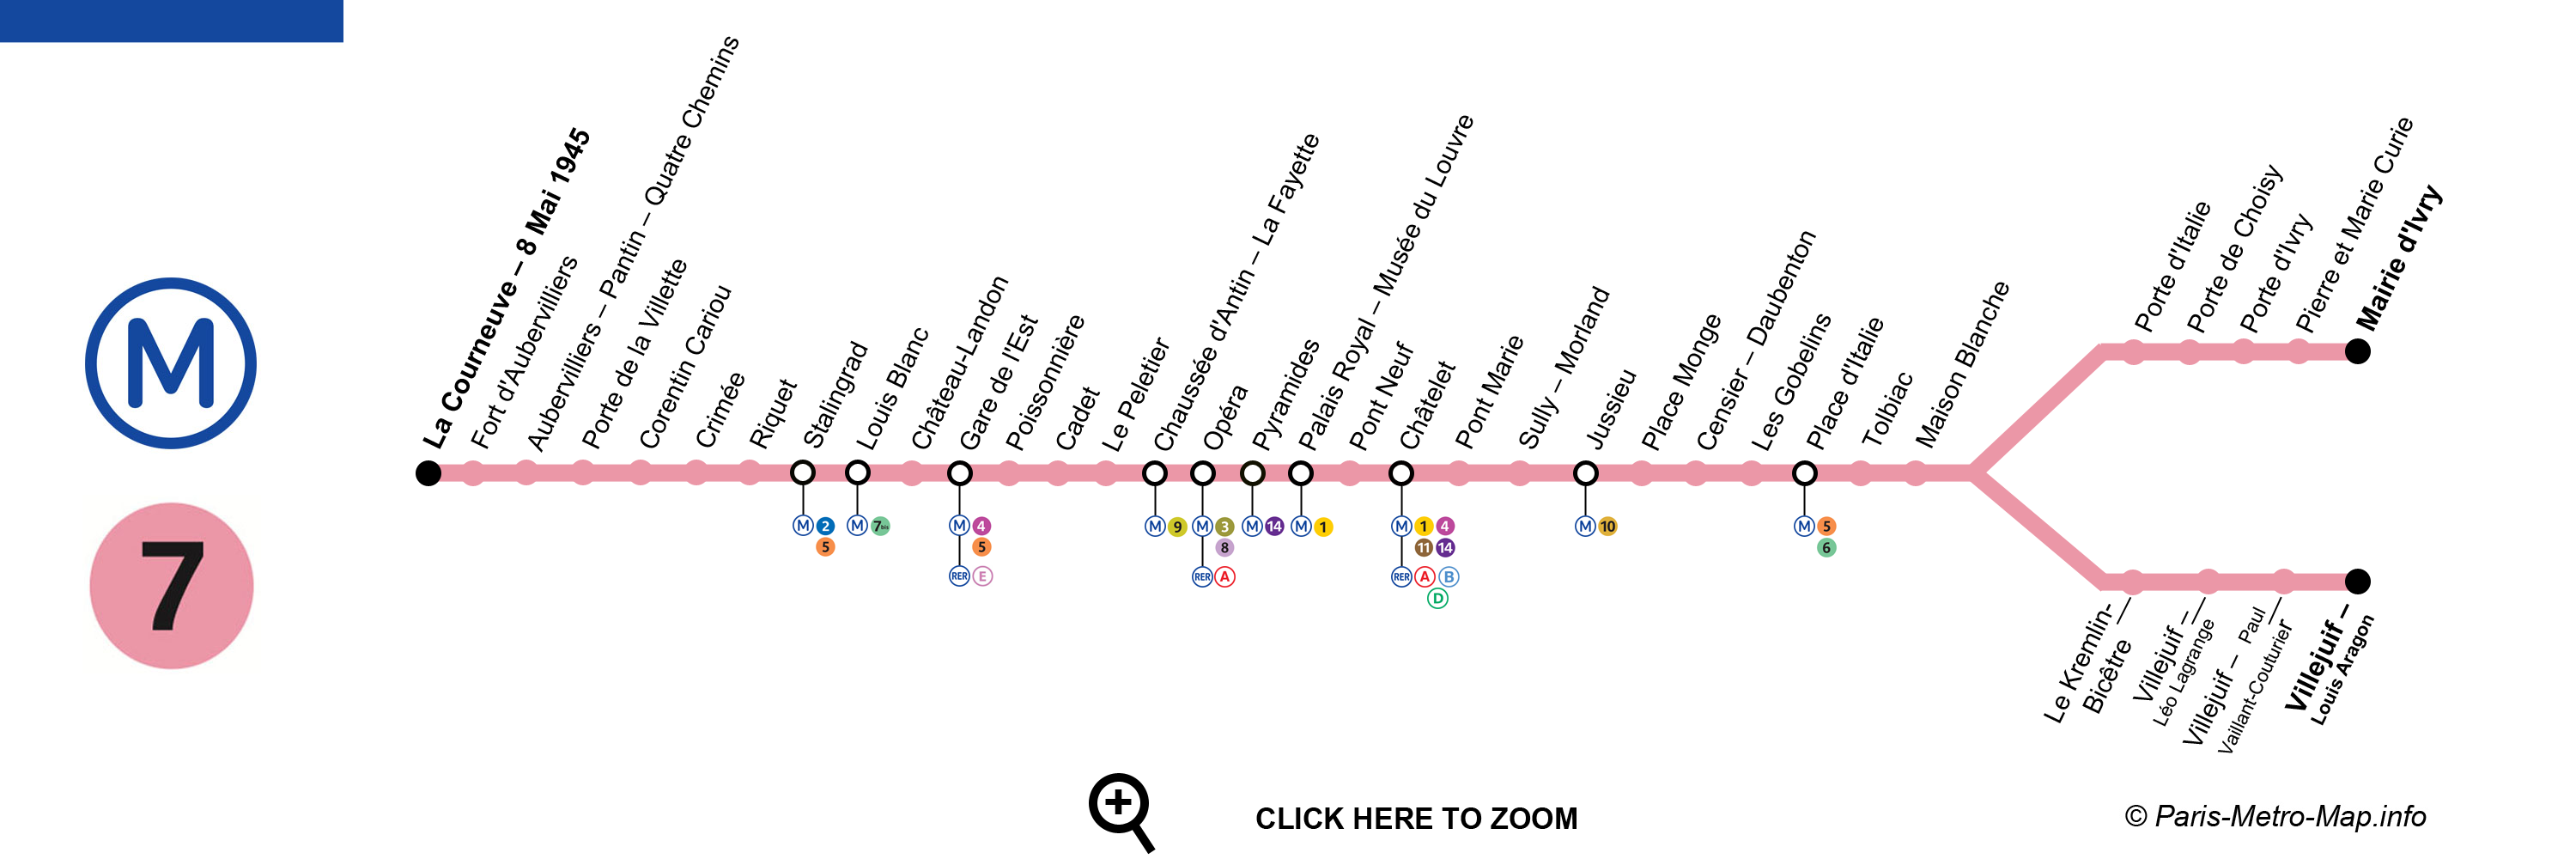 Metro Paris Line 7 Map